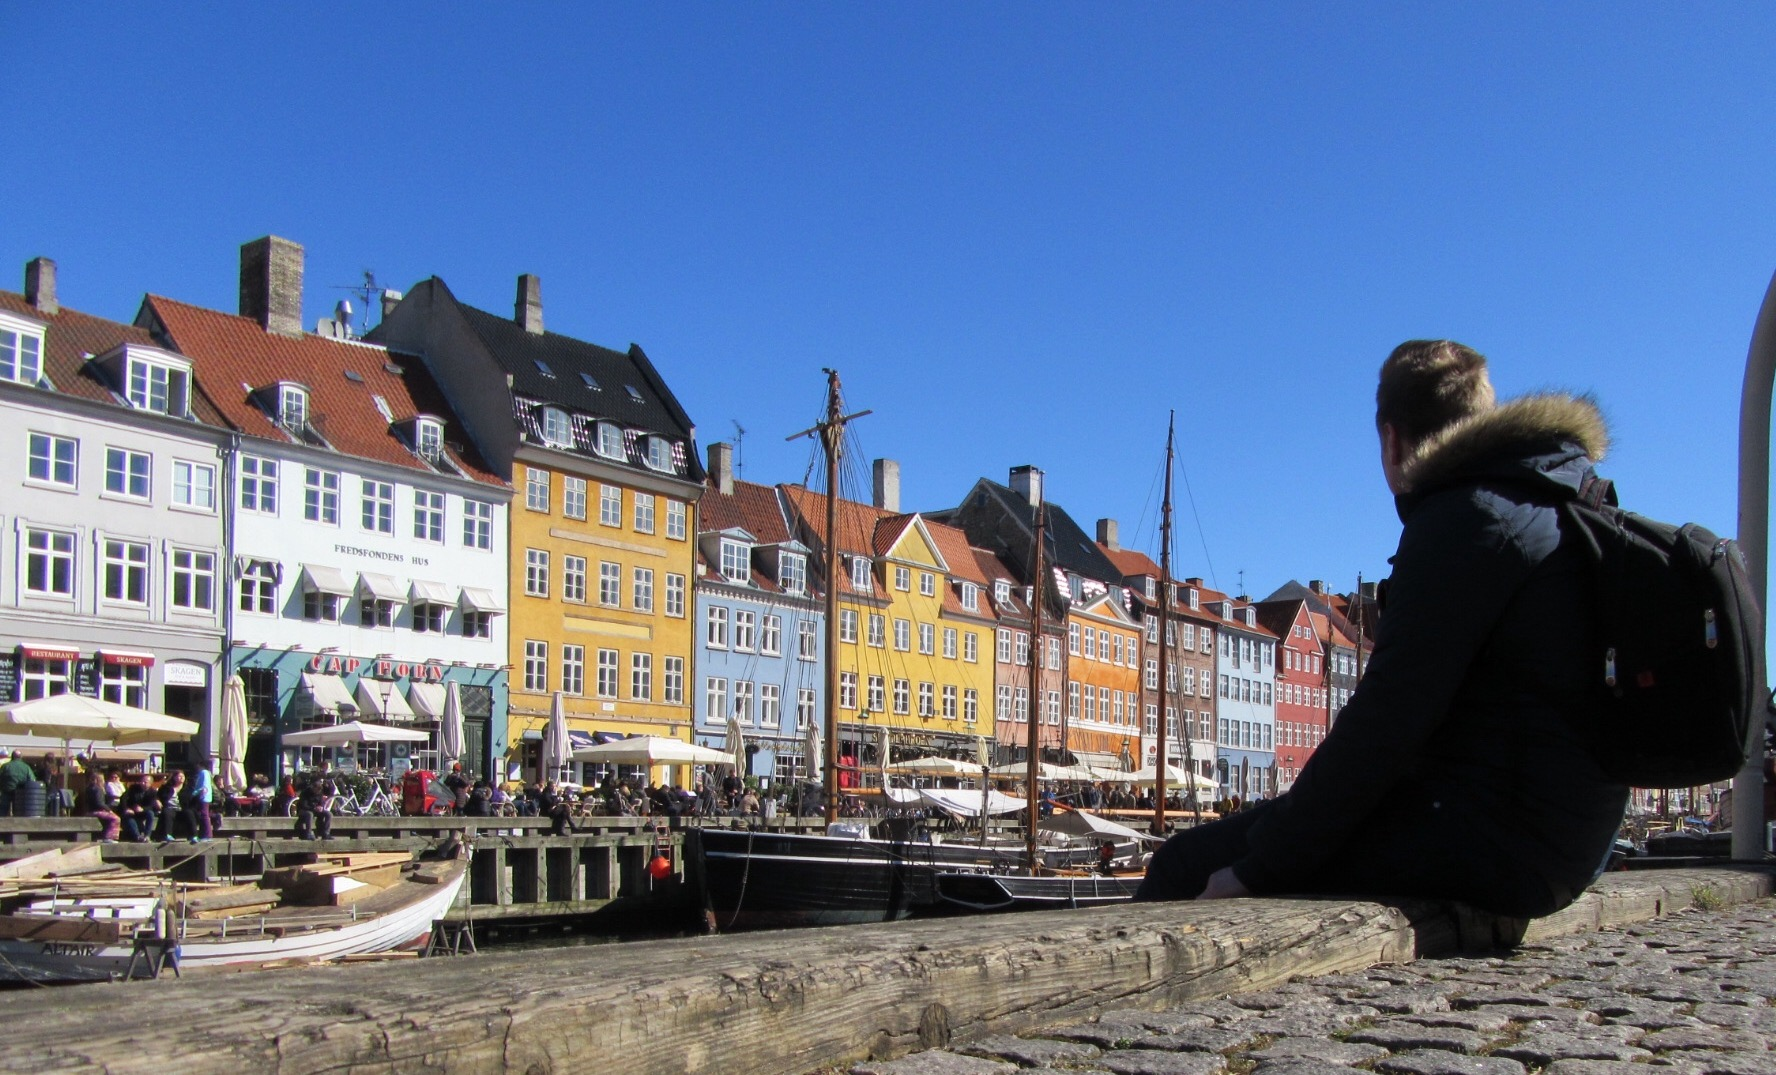 Looking out over the canal at Nyhavn in Copenhagen.